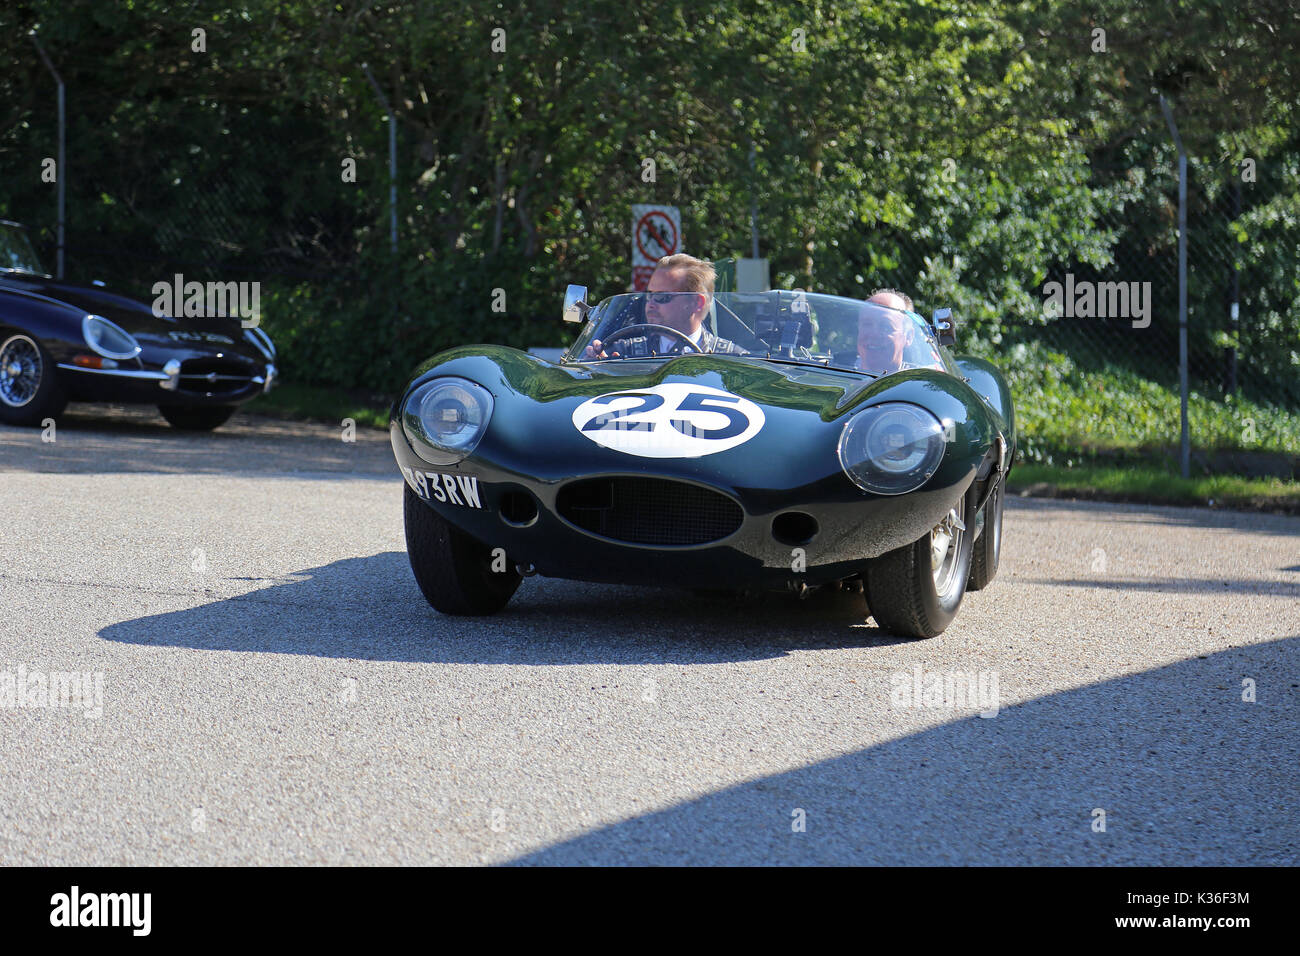 Five historic D-Type Jaguars visit Brooklands circuit, Weybridge, Surrey, England, UK. 1st September 2017. D-Type Jaguars won the Le Mans 24hr endurance race in 1955, 1956 and 1957. In 1957, D-Types were placed 1-2-3-4-6, with only a solitary Ferrari in 5th spoiling the parade. In picture, car numbered '25' (Jaguar Works, XKD 605, 'long-nose') was 6th at Le Mans in 1956. - Stock Image